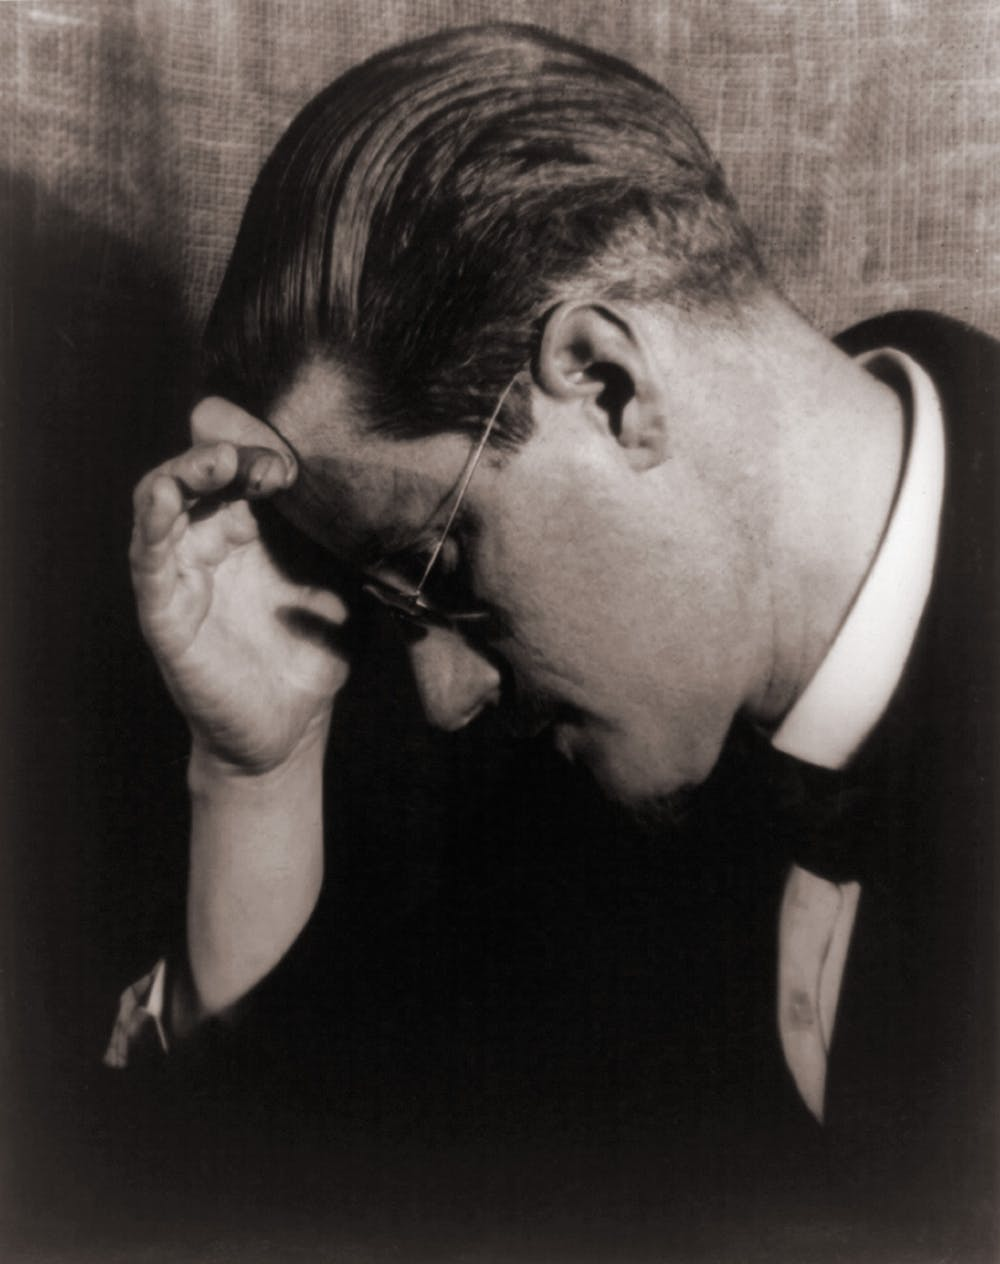 friday essay the wonder of joyce s ulysses a 1922 portrait of james joyce shutterstock